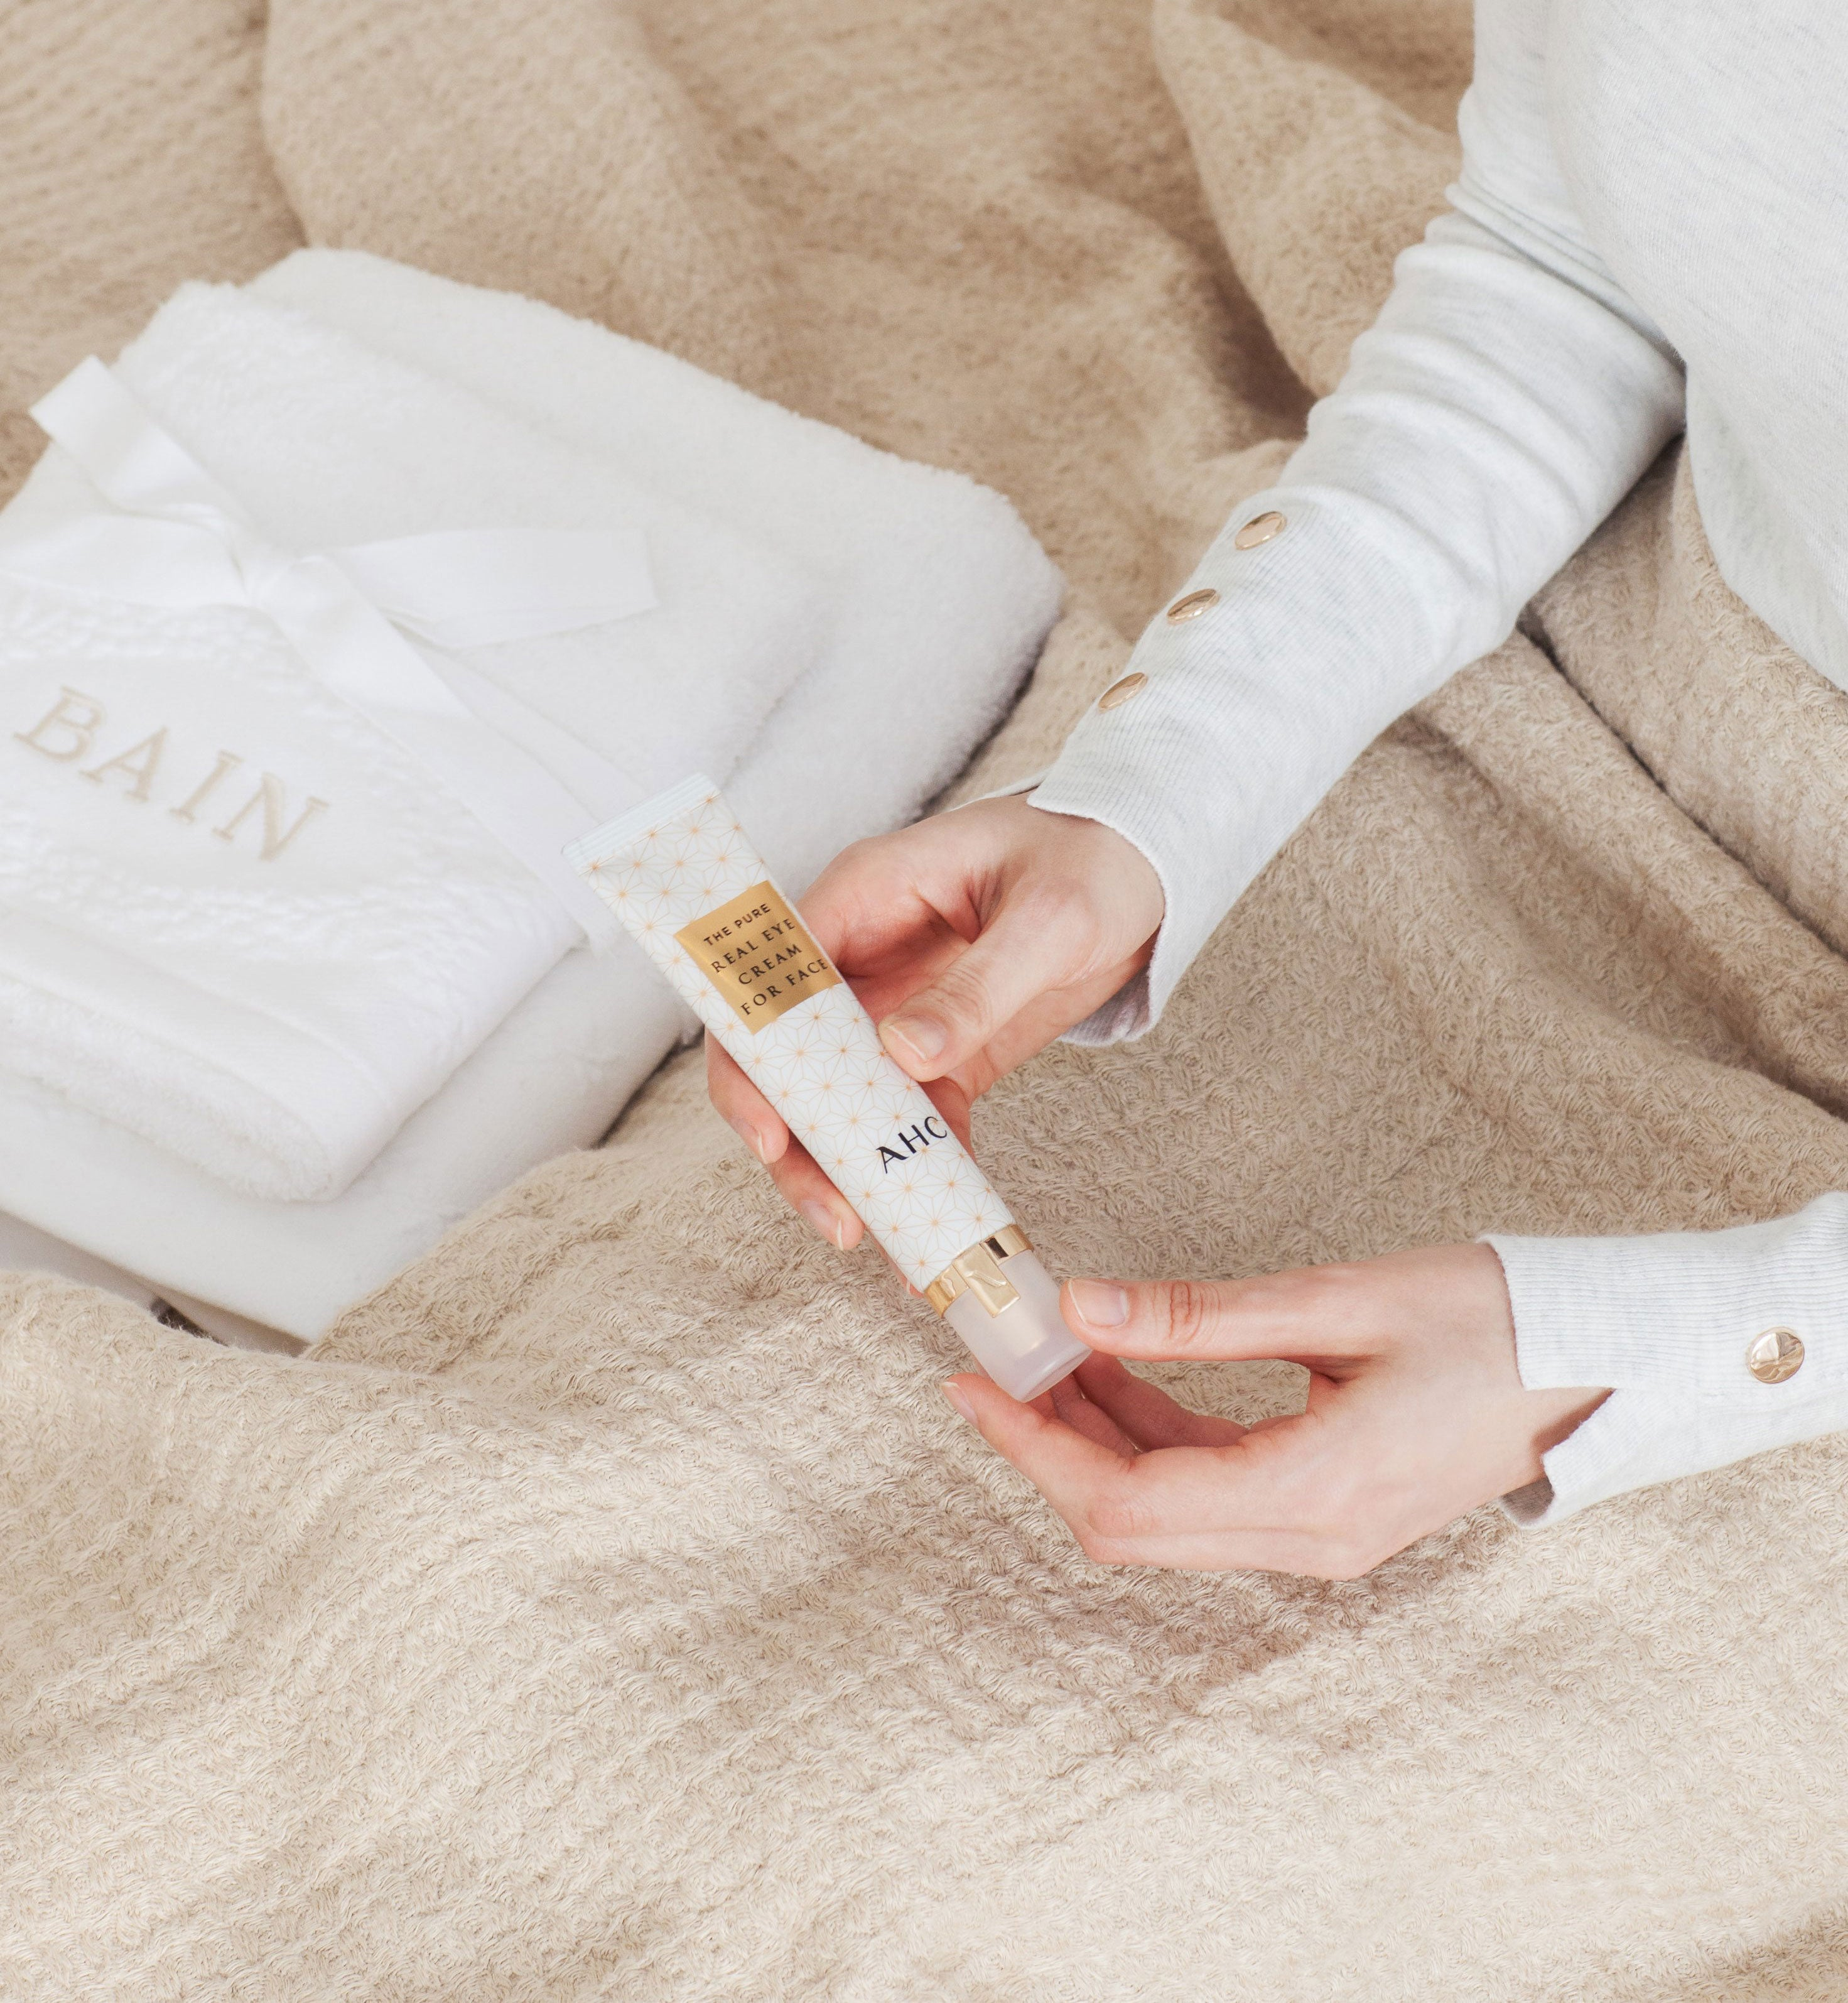 A hand holding AHC the pure real eye cream for face with a blanket background